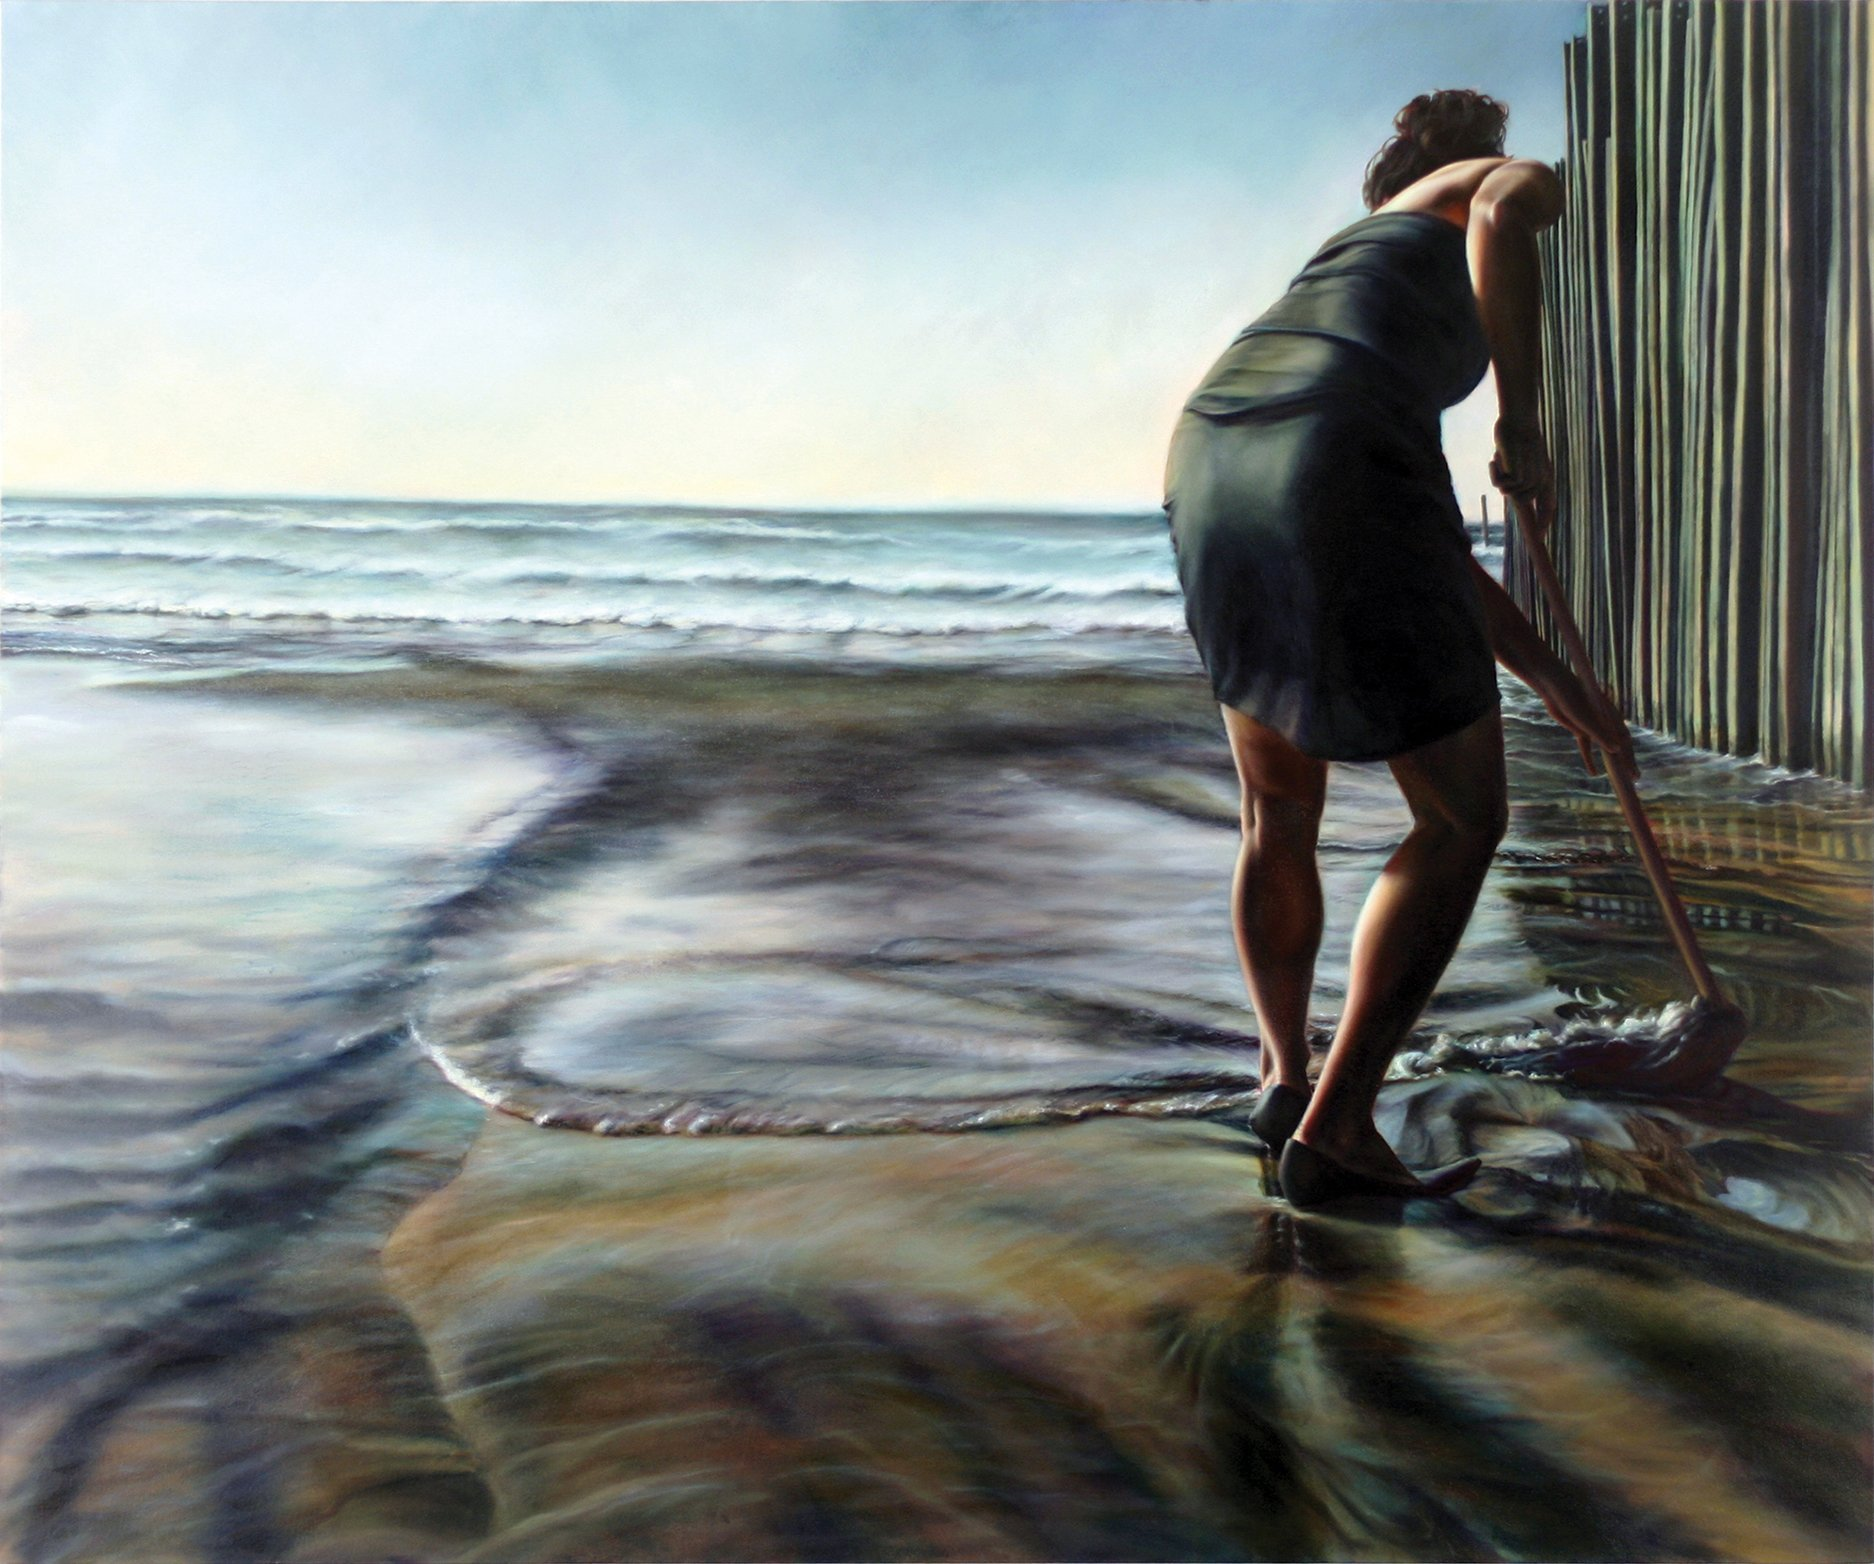 Painting of a woman in a cocktail dress mopping the ocean shore next to the Mexican-American border fence